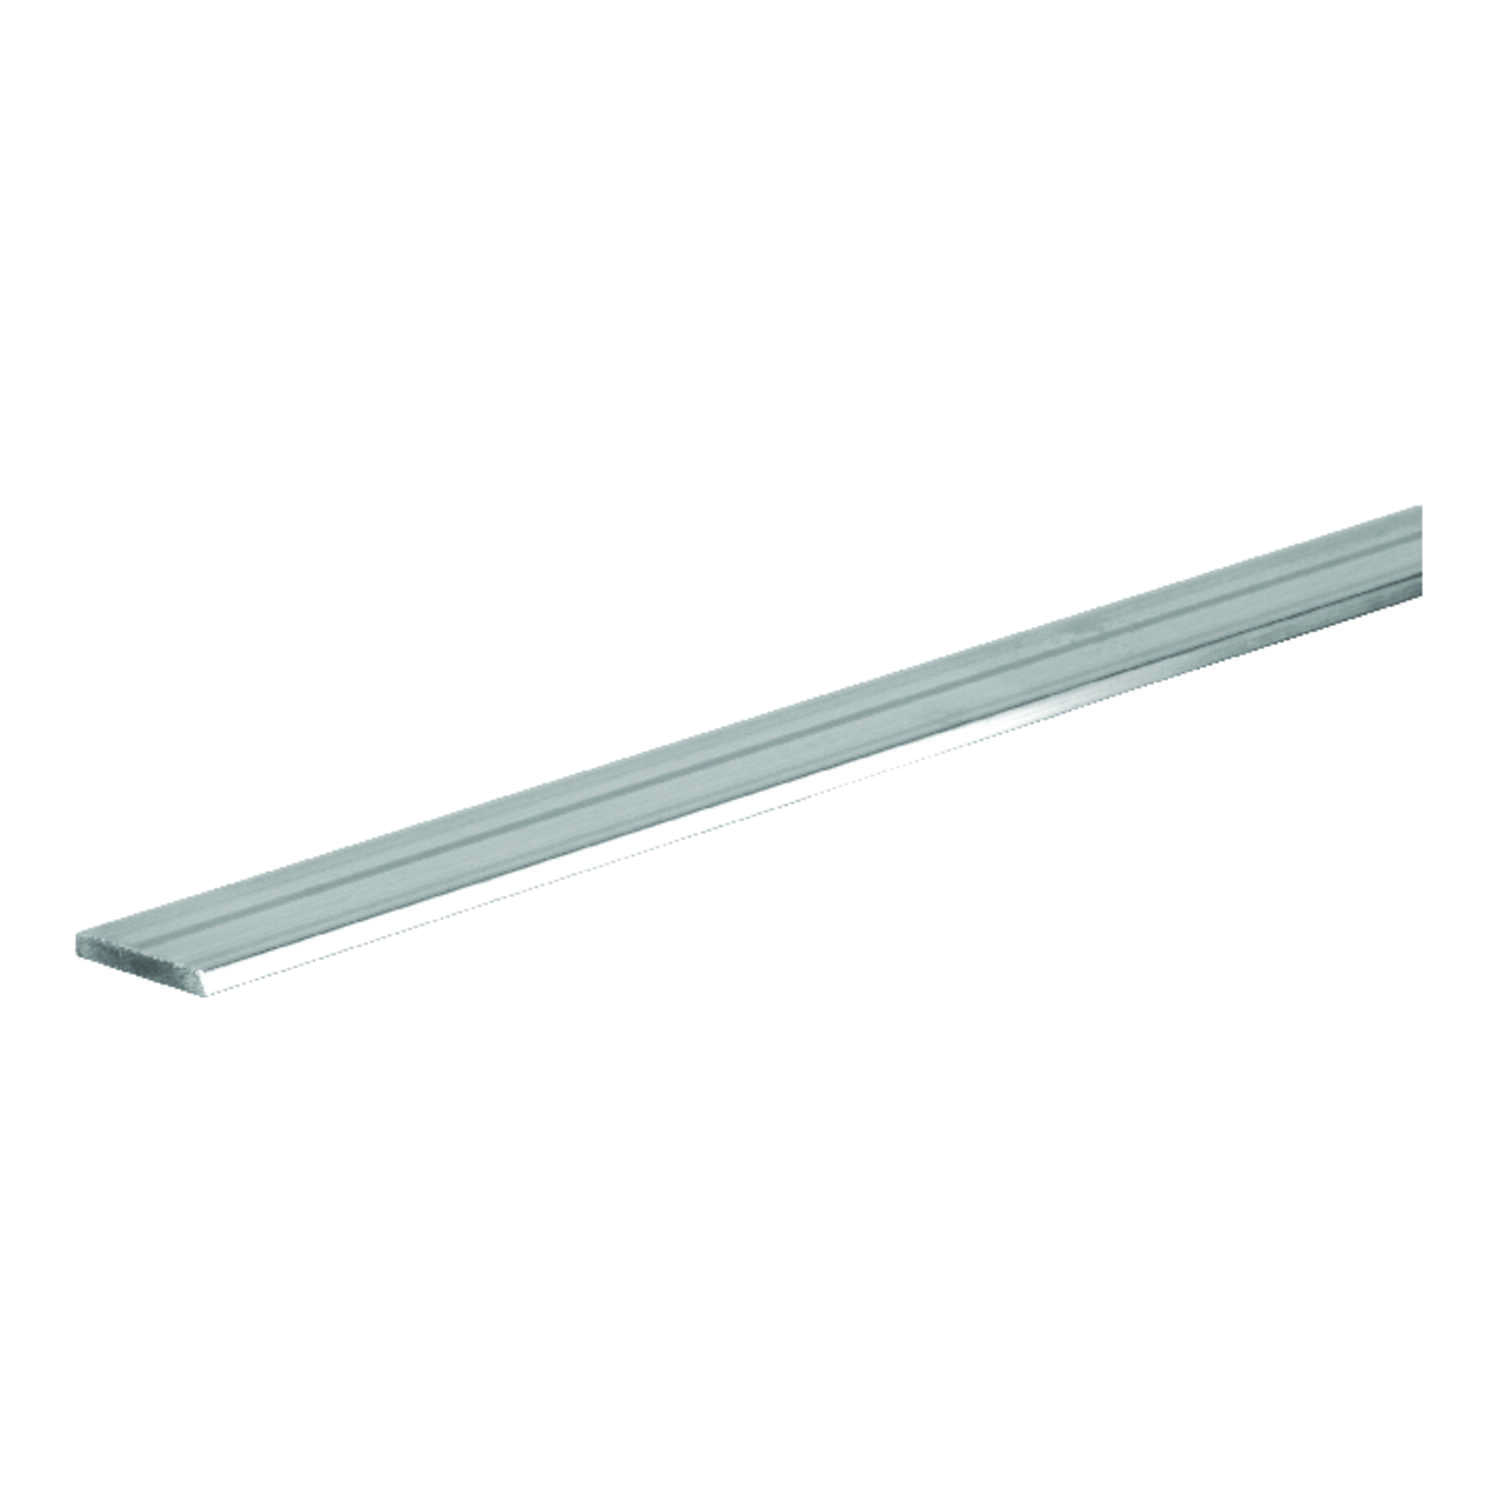 Boltmaster  0.0625 in.  x 0.75 in. W x 3 ft. L Weldable Aluminum Flat Bar  1 pk